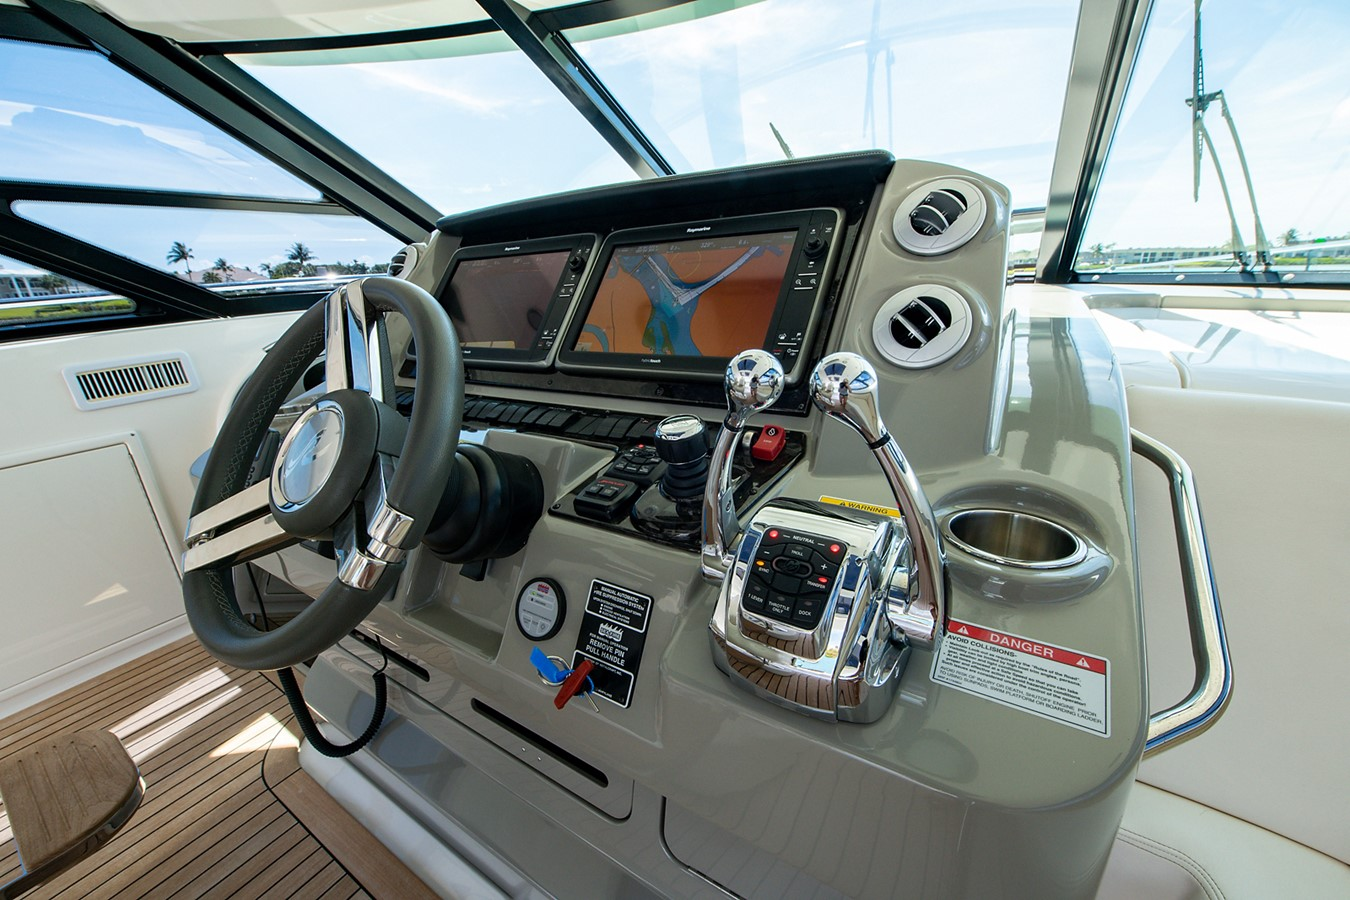 2013 SEA RAY Sundancer Motor Yacht 2531173